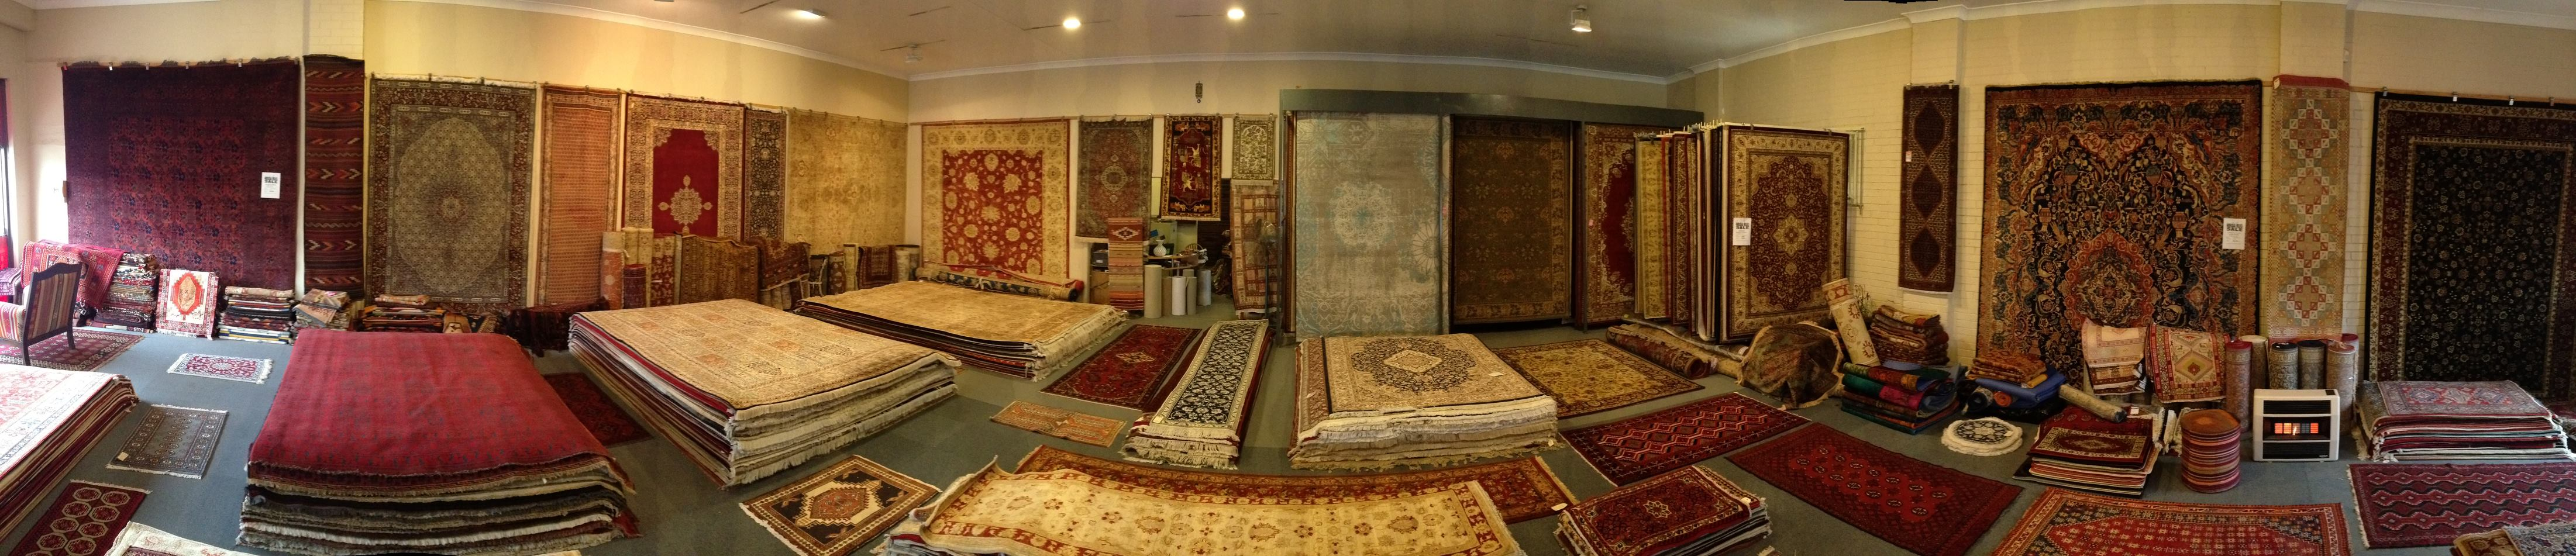 Bowral Rug Gallery Is Hosting An Oriental Modern Exhibition At Park In Canberra Offering Genuine Hand Made Persian Rugs